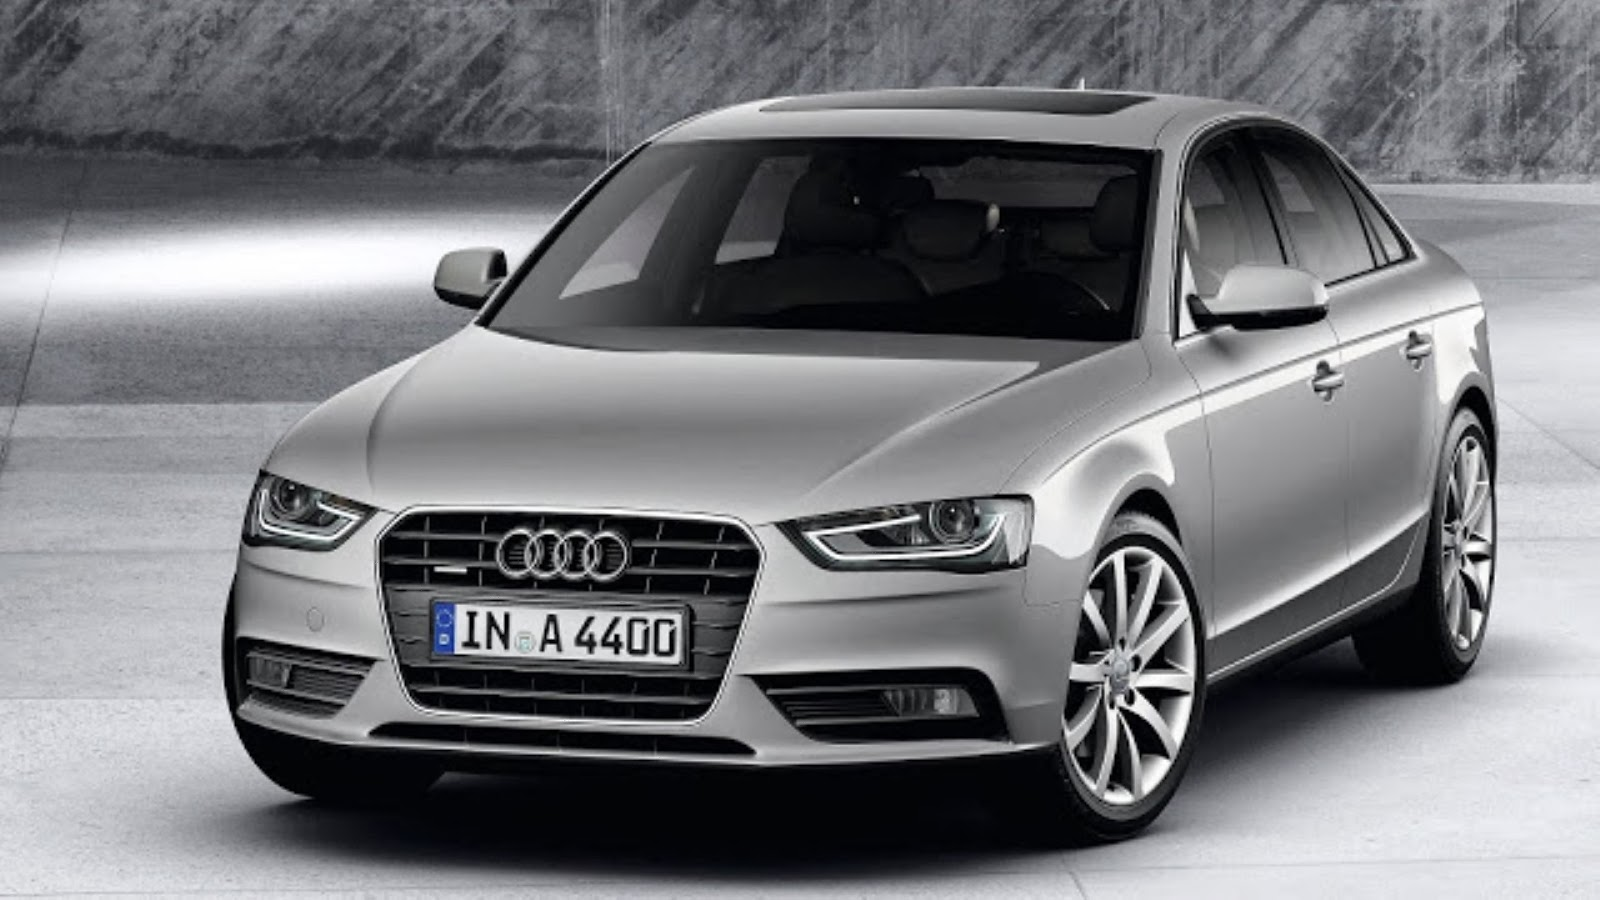 Audi-A-Specification-Photos-wallpaper-wp5803696